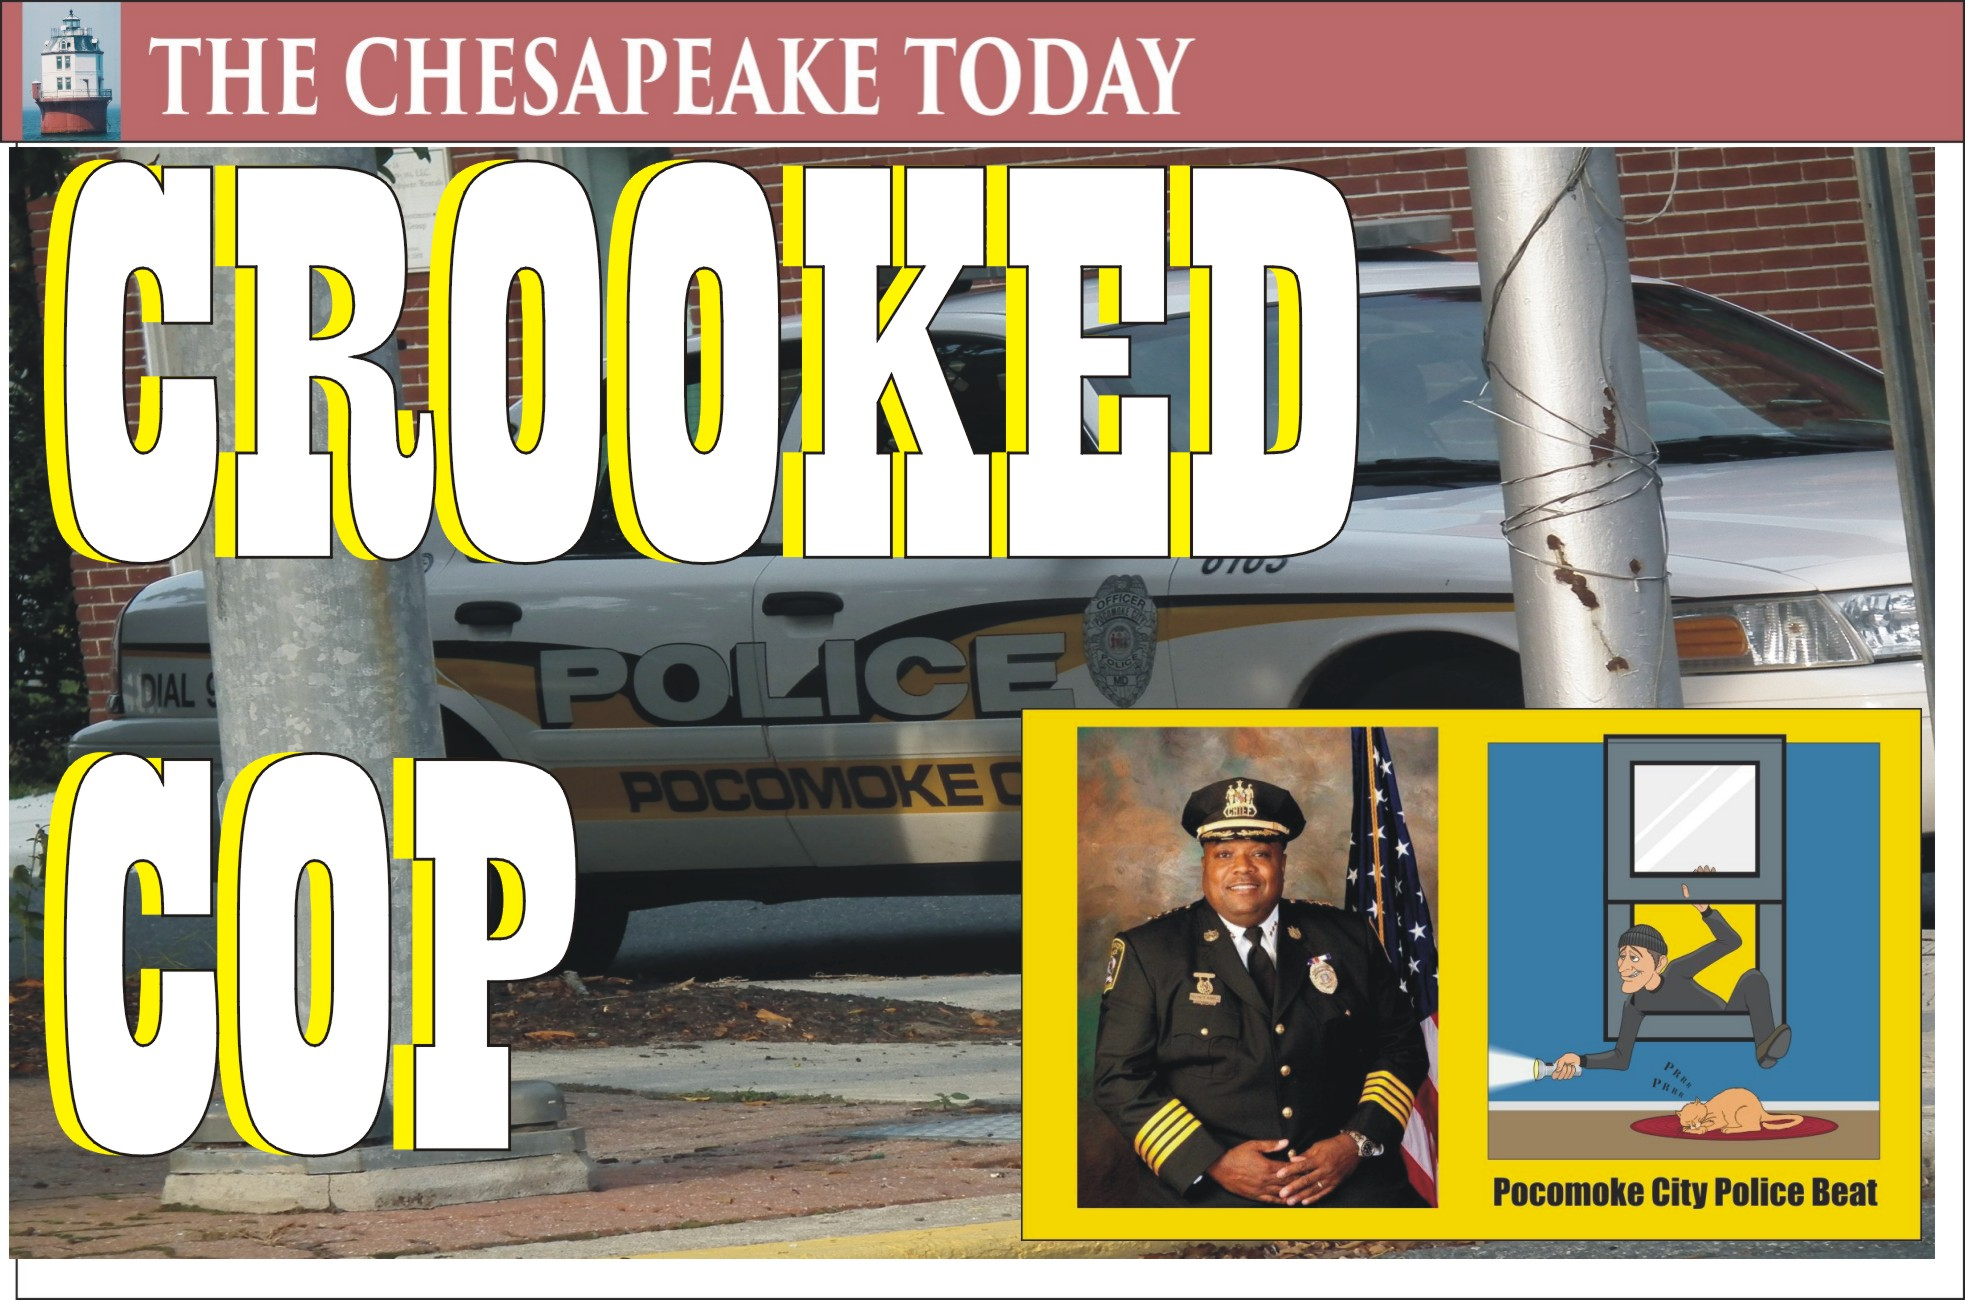 CROOKED COP: FORMER POCOMOKE CITY POLICE CHIEF KELVIN SEWELL SENTENCED FOR MISCONDUCT IN OFFICE CONVICTION